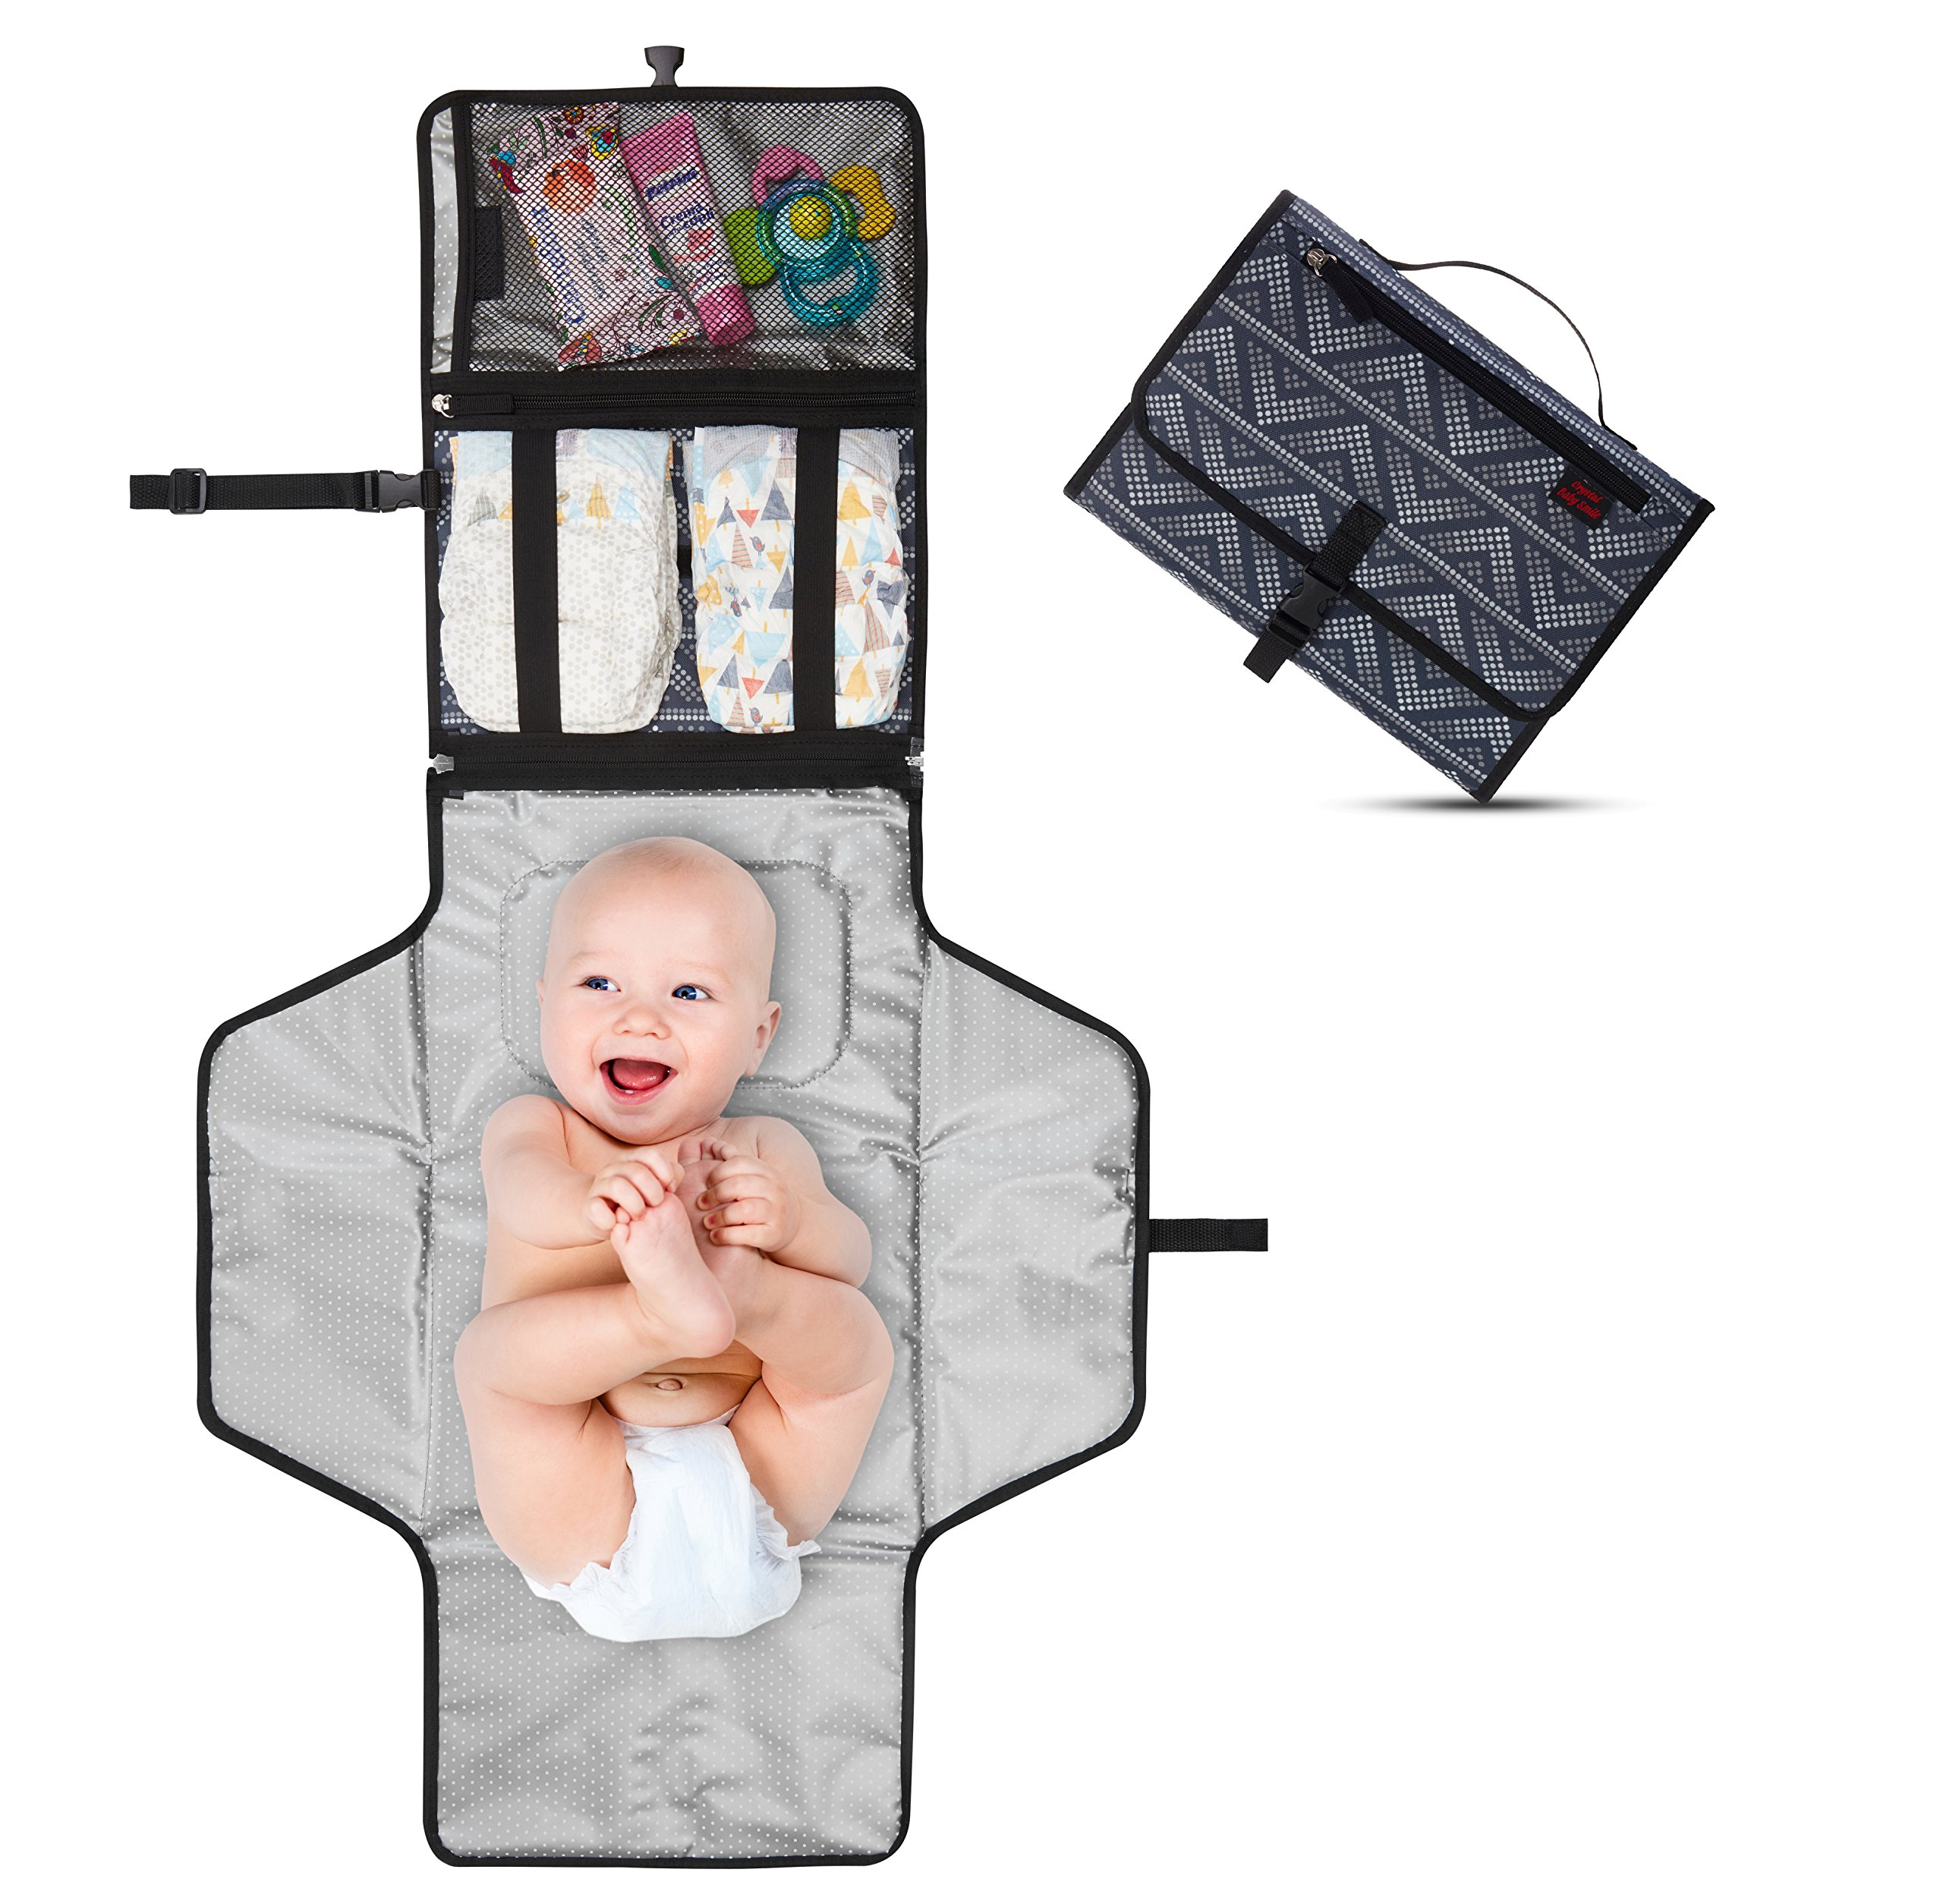 Portable Diaper Changing Pad - Diaper Clutch - Lightweight Travel Station Kit for Baby Diapering - Entirely Padded, Detachable and Wipeable Mat - Mesh and Zippered Pockets (Gray Dots) by Crystal Baby Smile